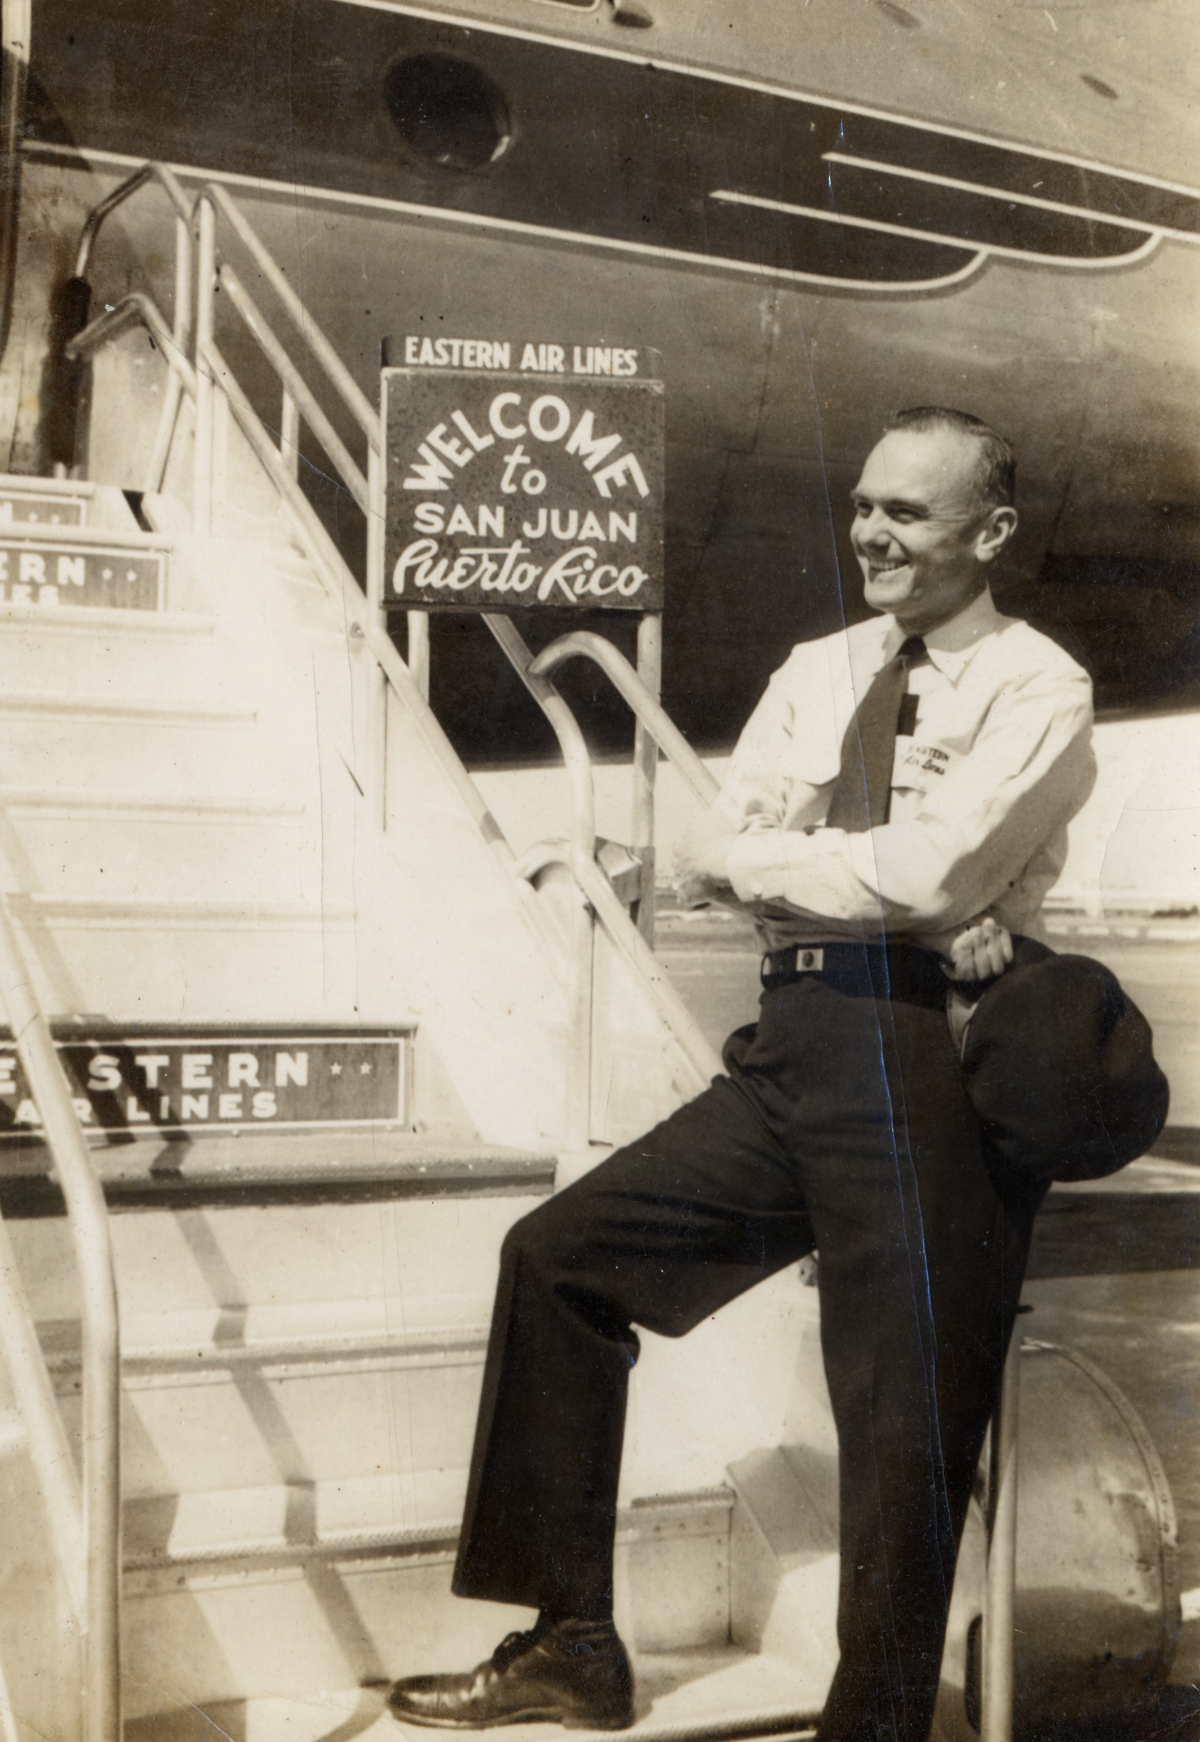 Eastern Air Lines Captain R.C. Young.